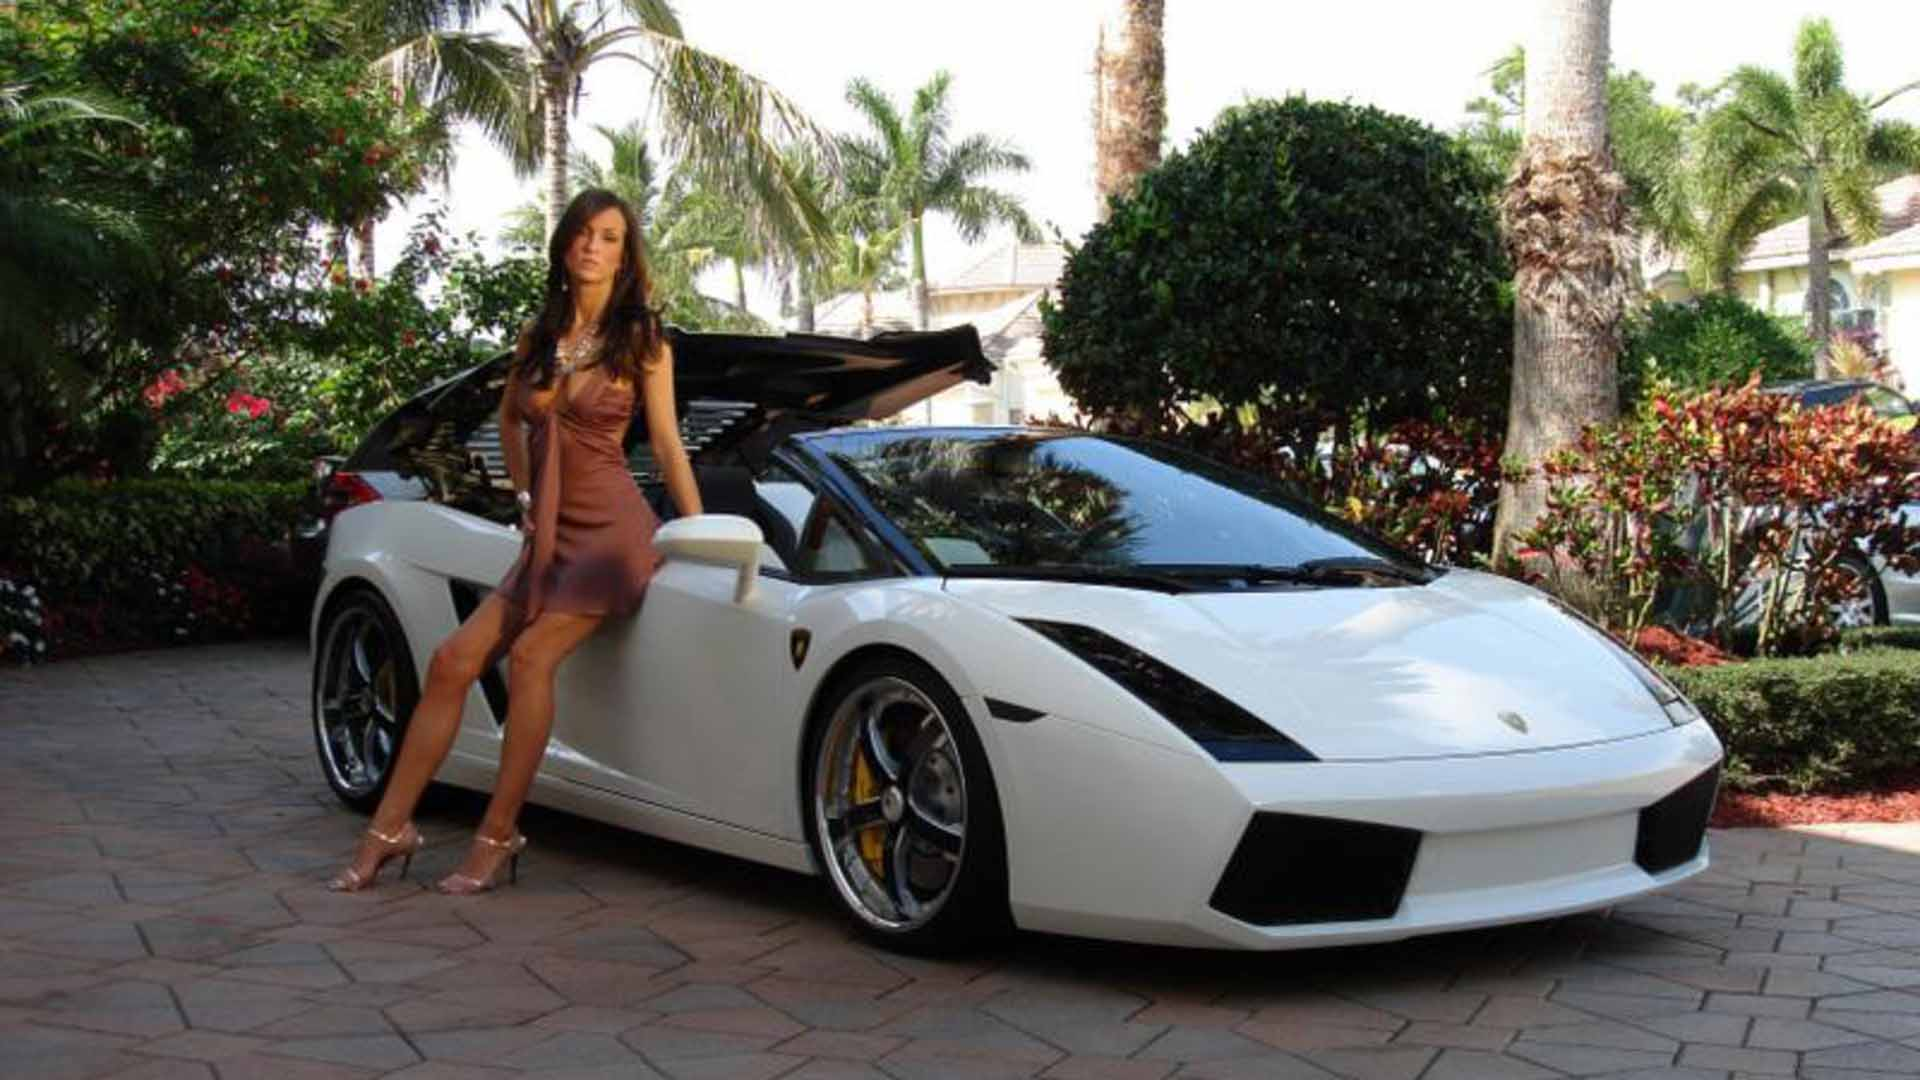 car with girl car with b 8894ejpg 1920x1080